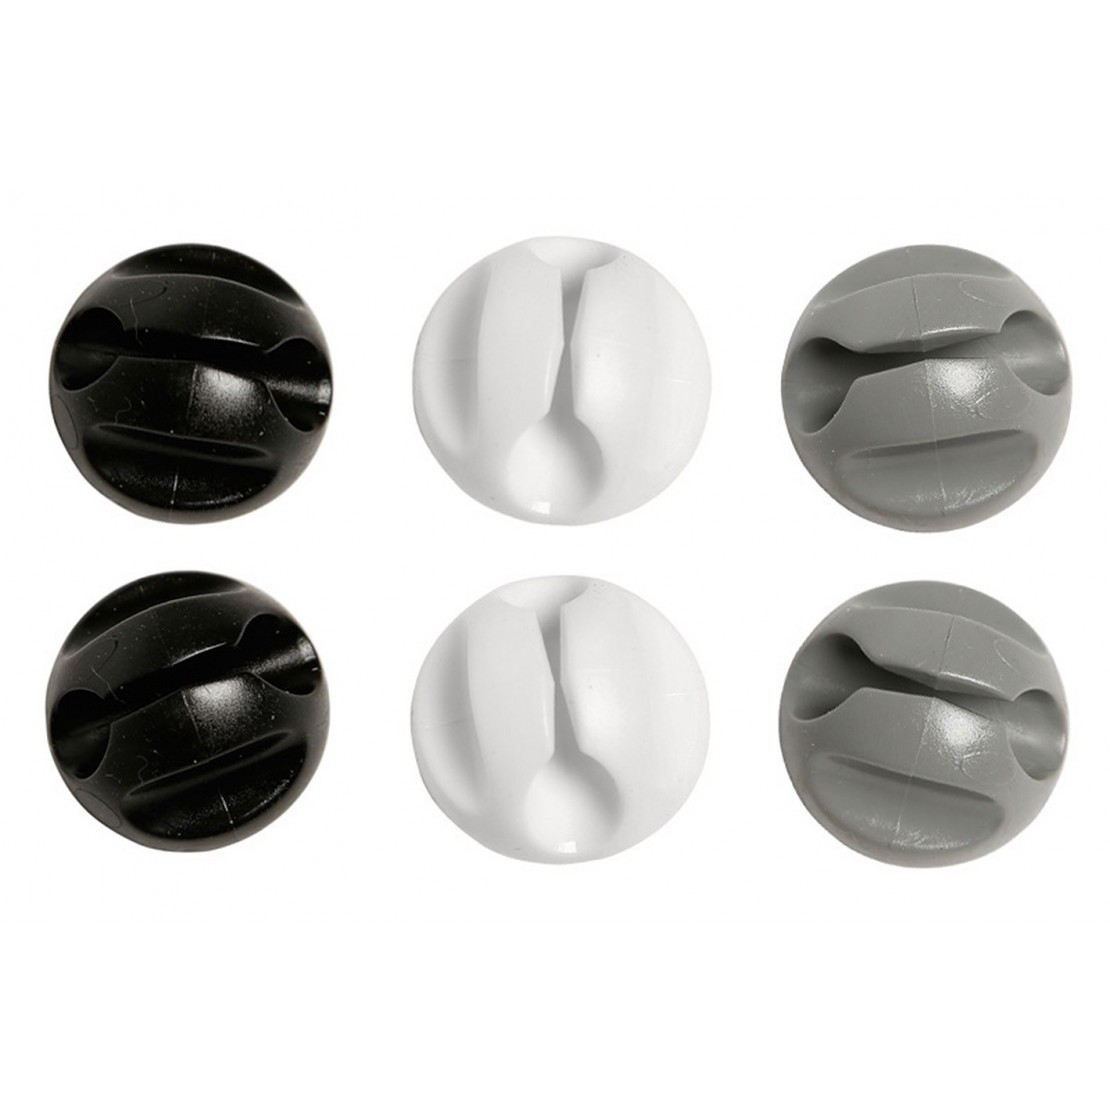 Bouton attaches câble 2x noir, 2x gris, 2x blanc